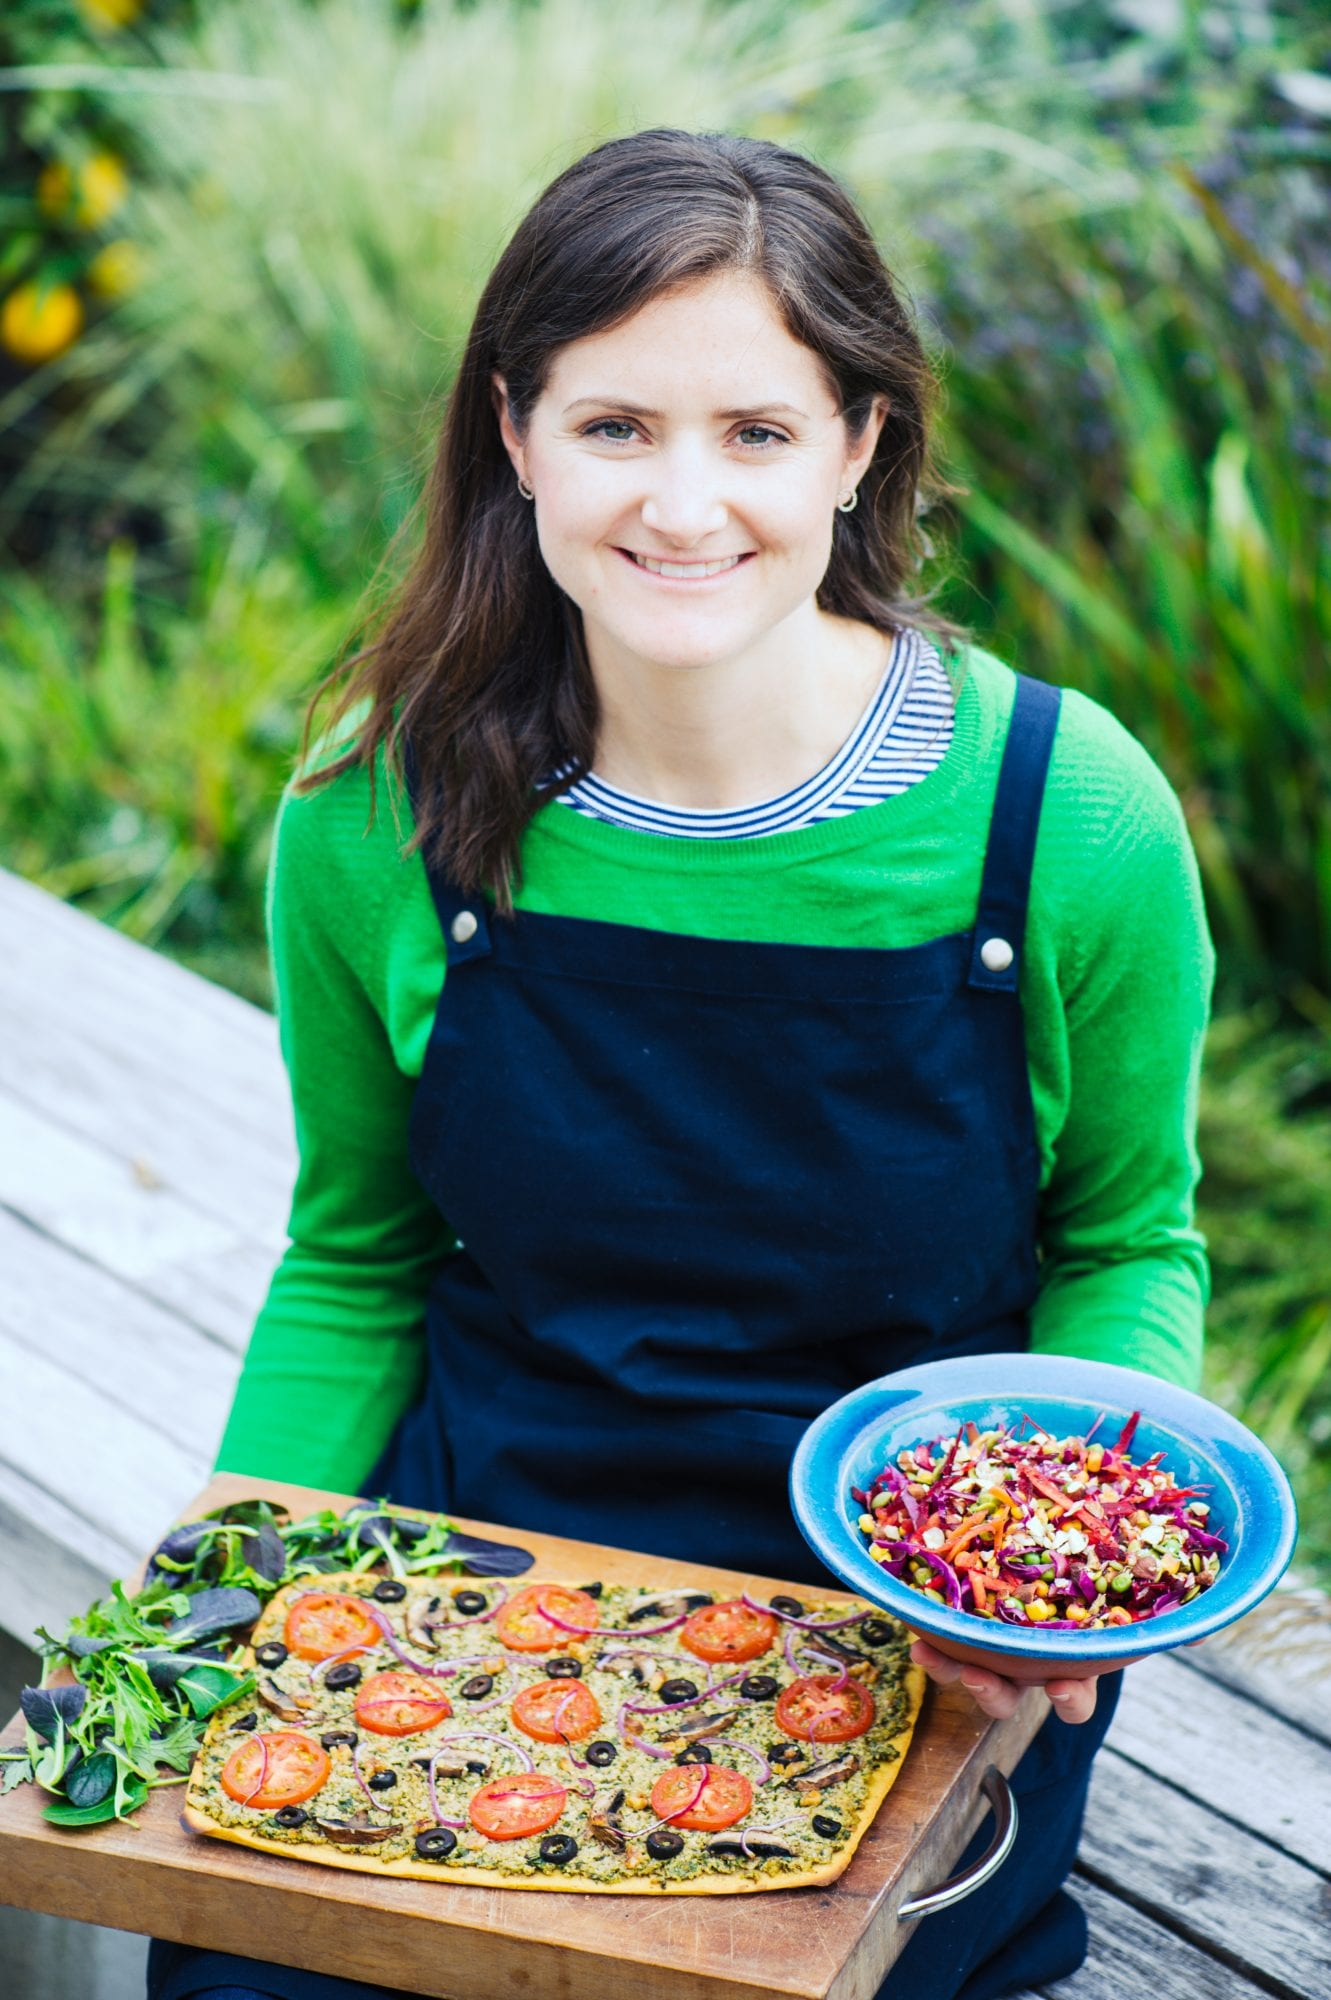 Hannah OMalley, founder of The Better Base talks about healthy plant-based vegan lifestyle